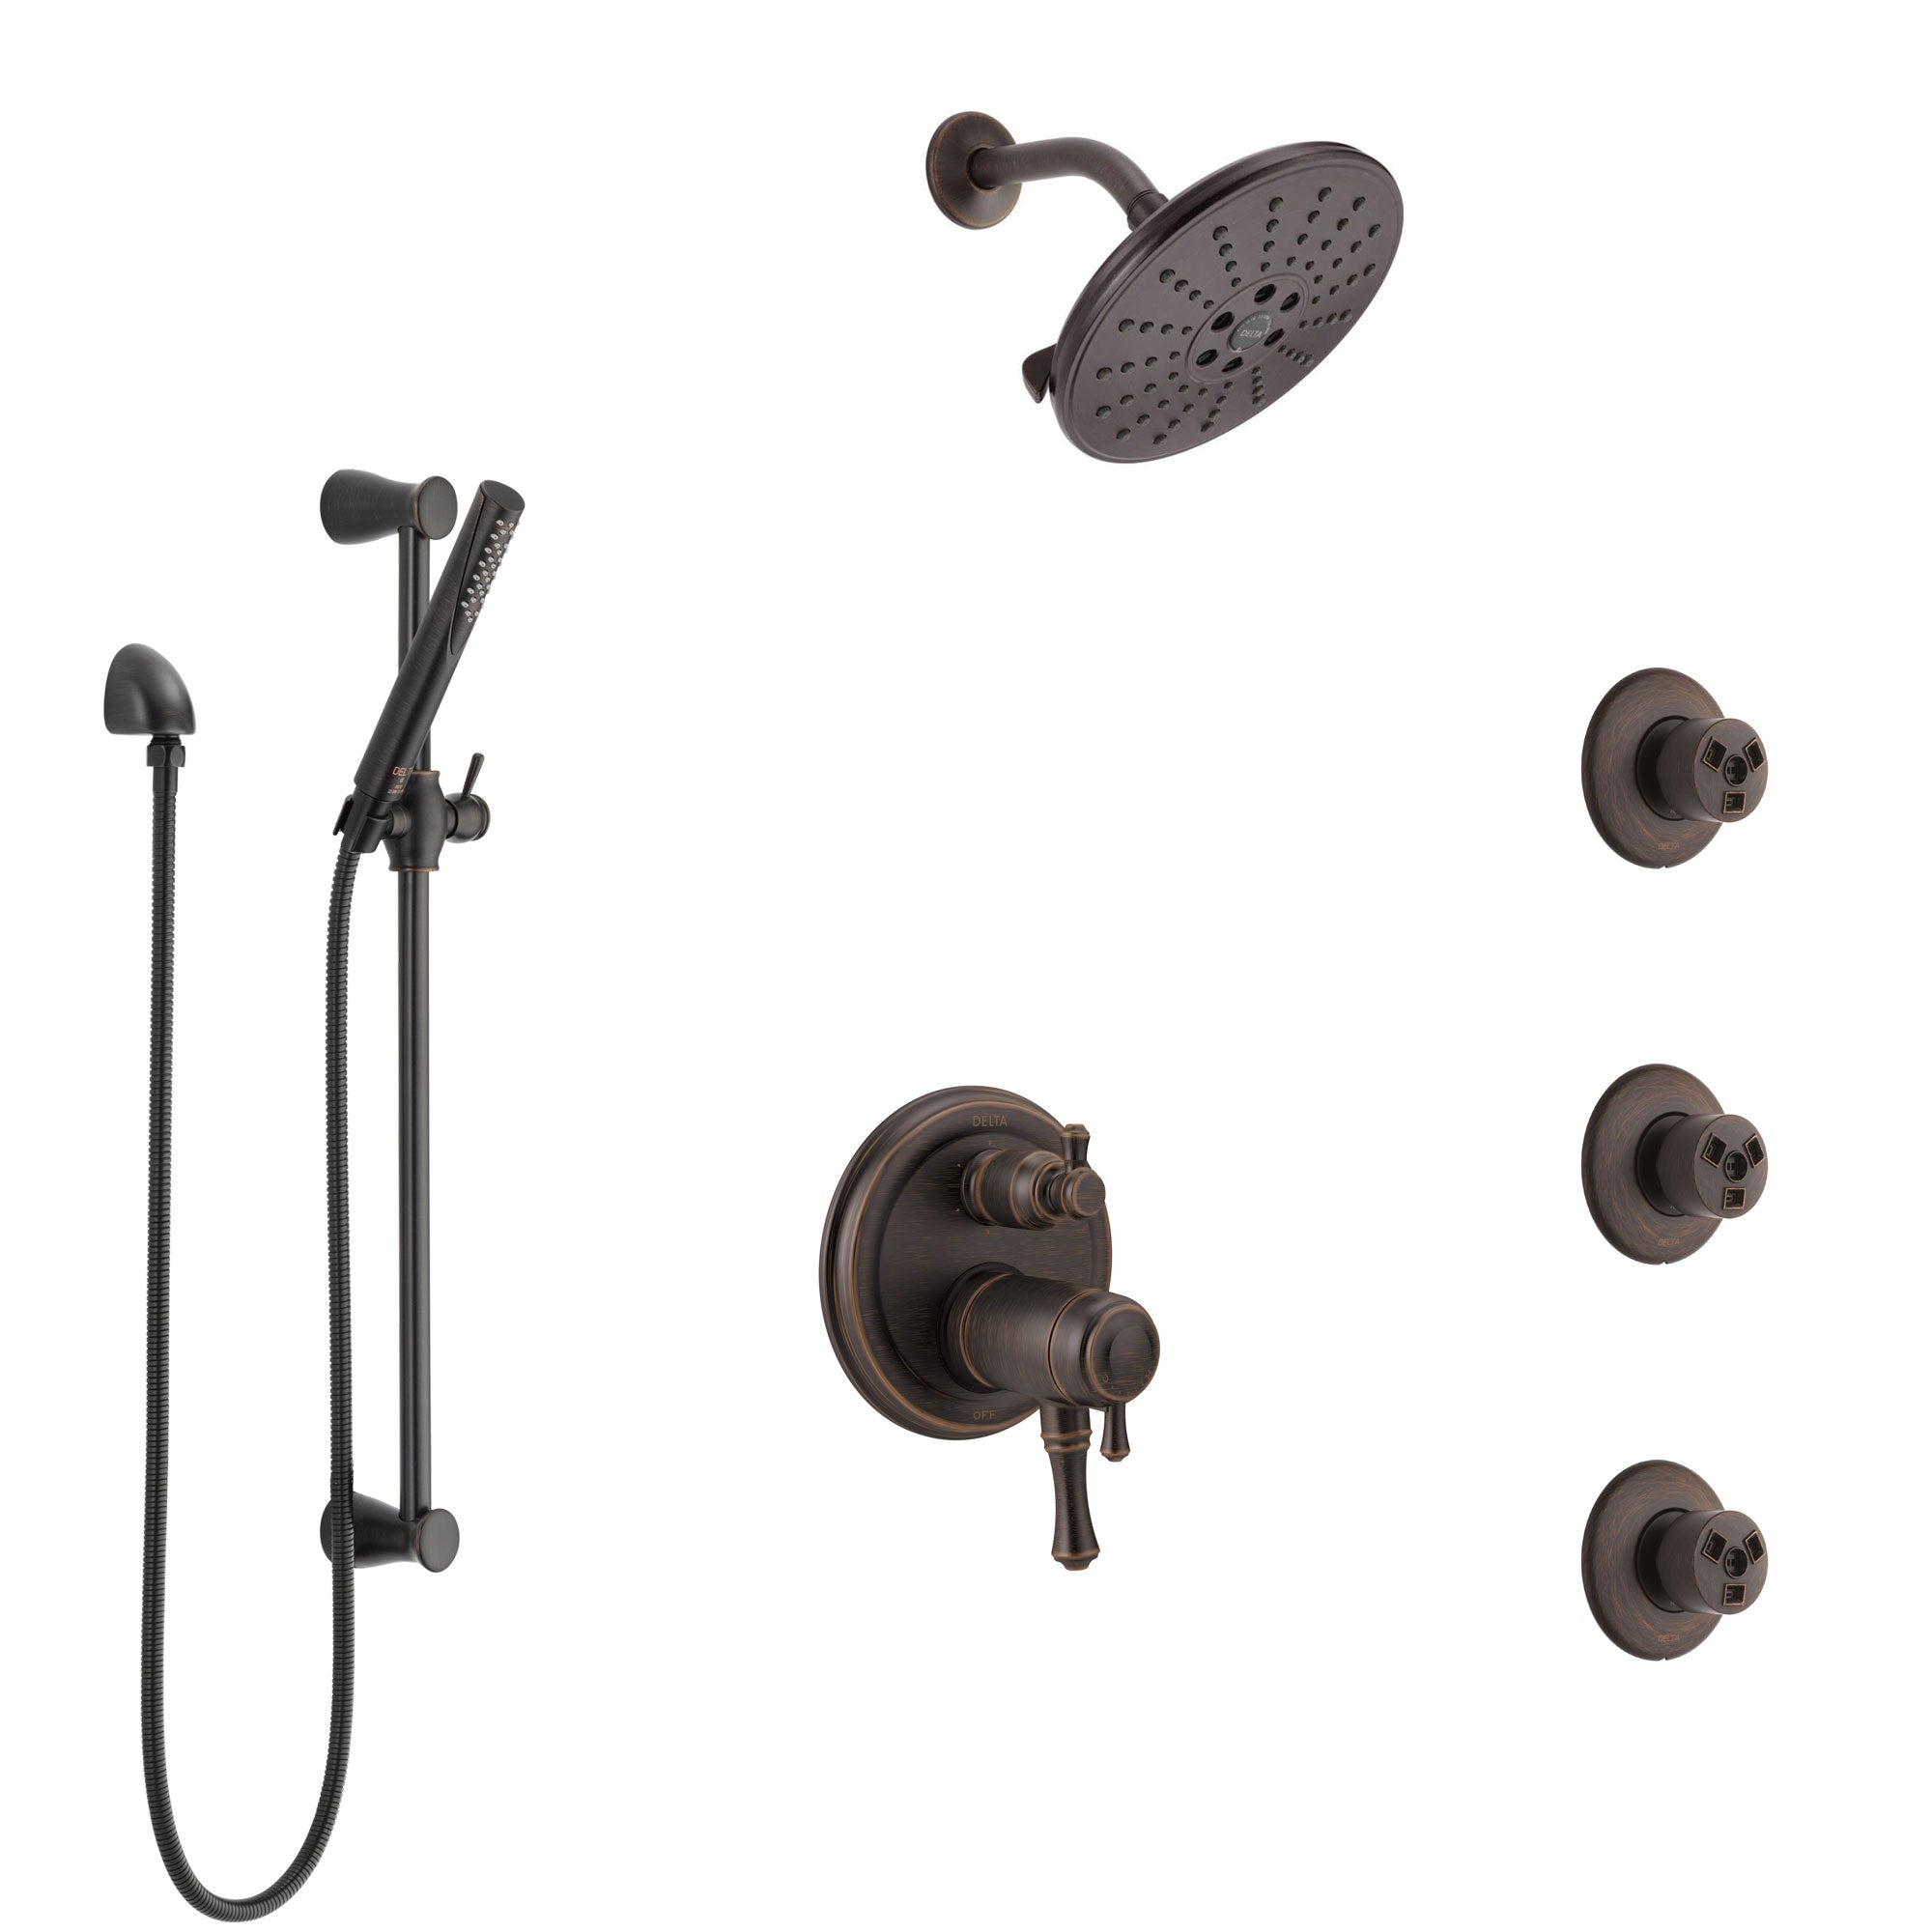 Delta Cassidy Venetian Bronze Dual Thermostatic Control Integrated Diverter Shower System, Showerhead, 3 Body Sprays, and Hand Shower SS27T997RB12